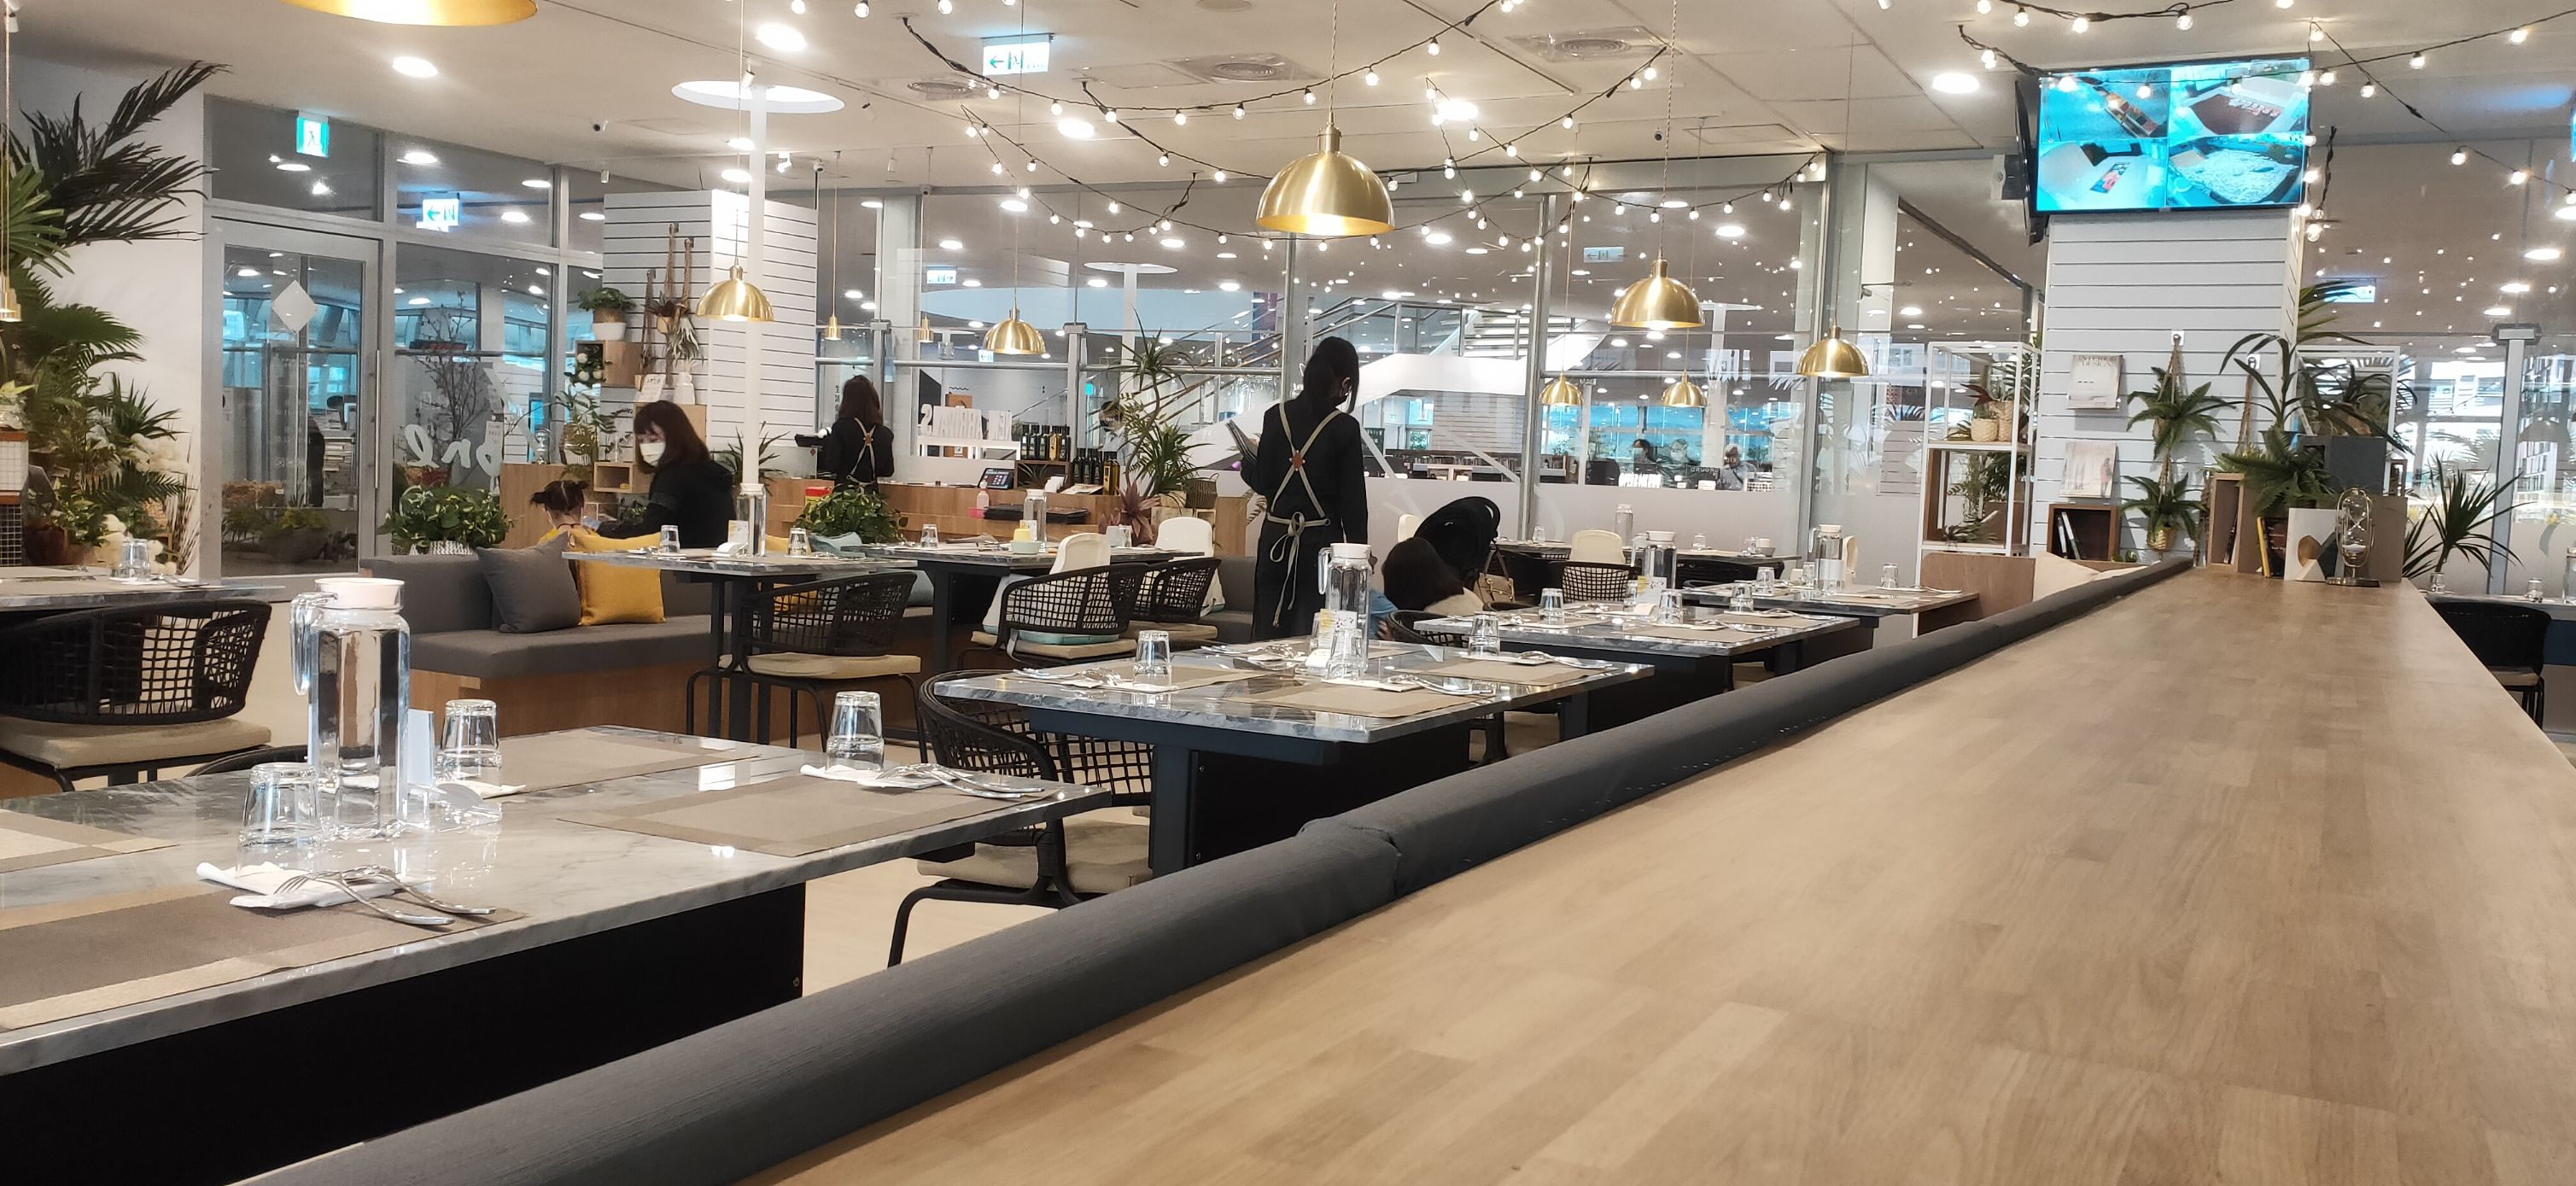 Lunch or tea time:Zone Café